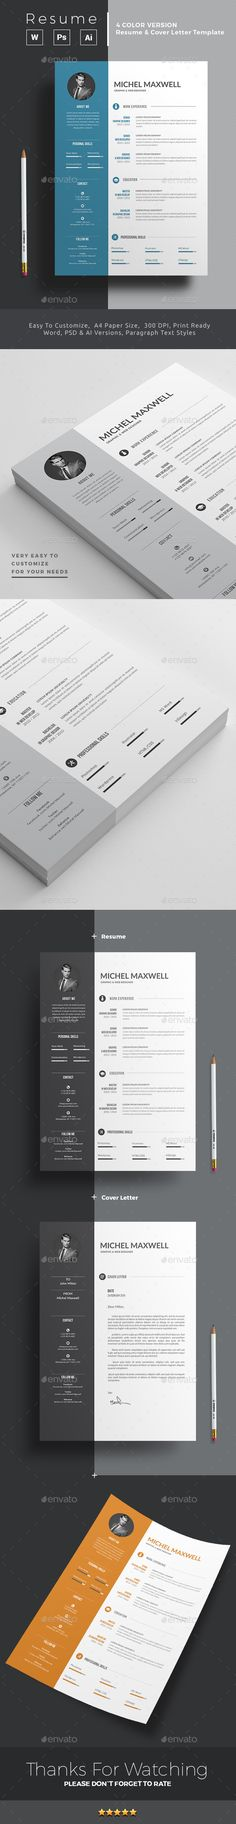 Resume Word Resume words, Cv template and Professional resume design - resume for word